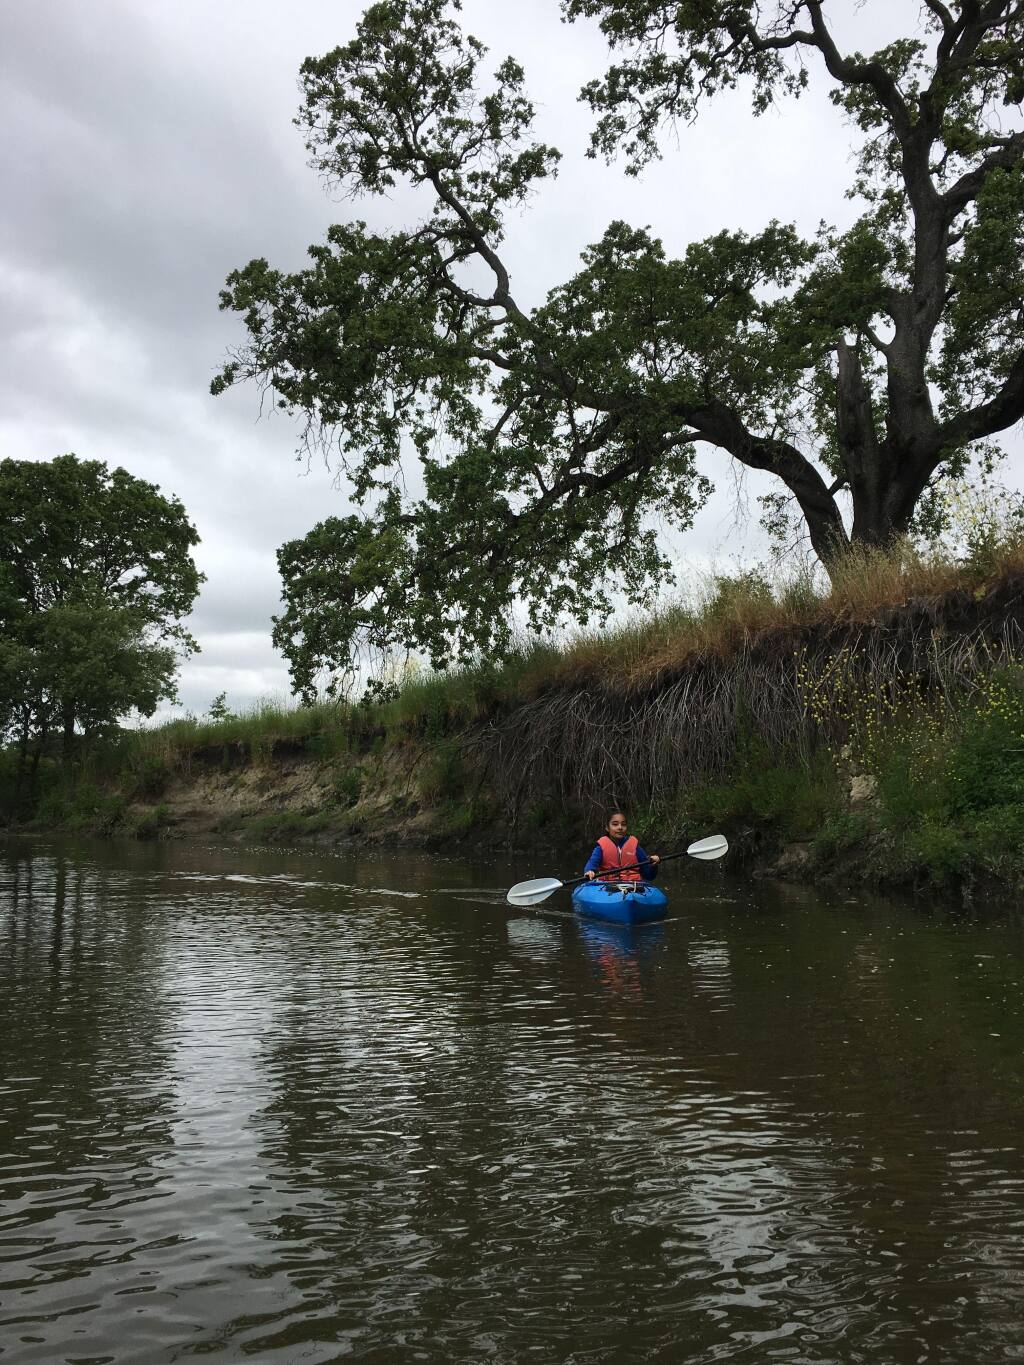 A kayaker enjoys a moment of solitude on the Petaluma River near the area proposed for the Sid Commons Housing Development.